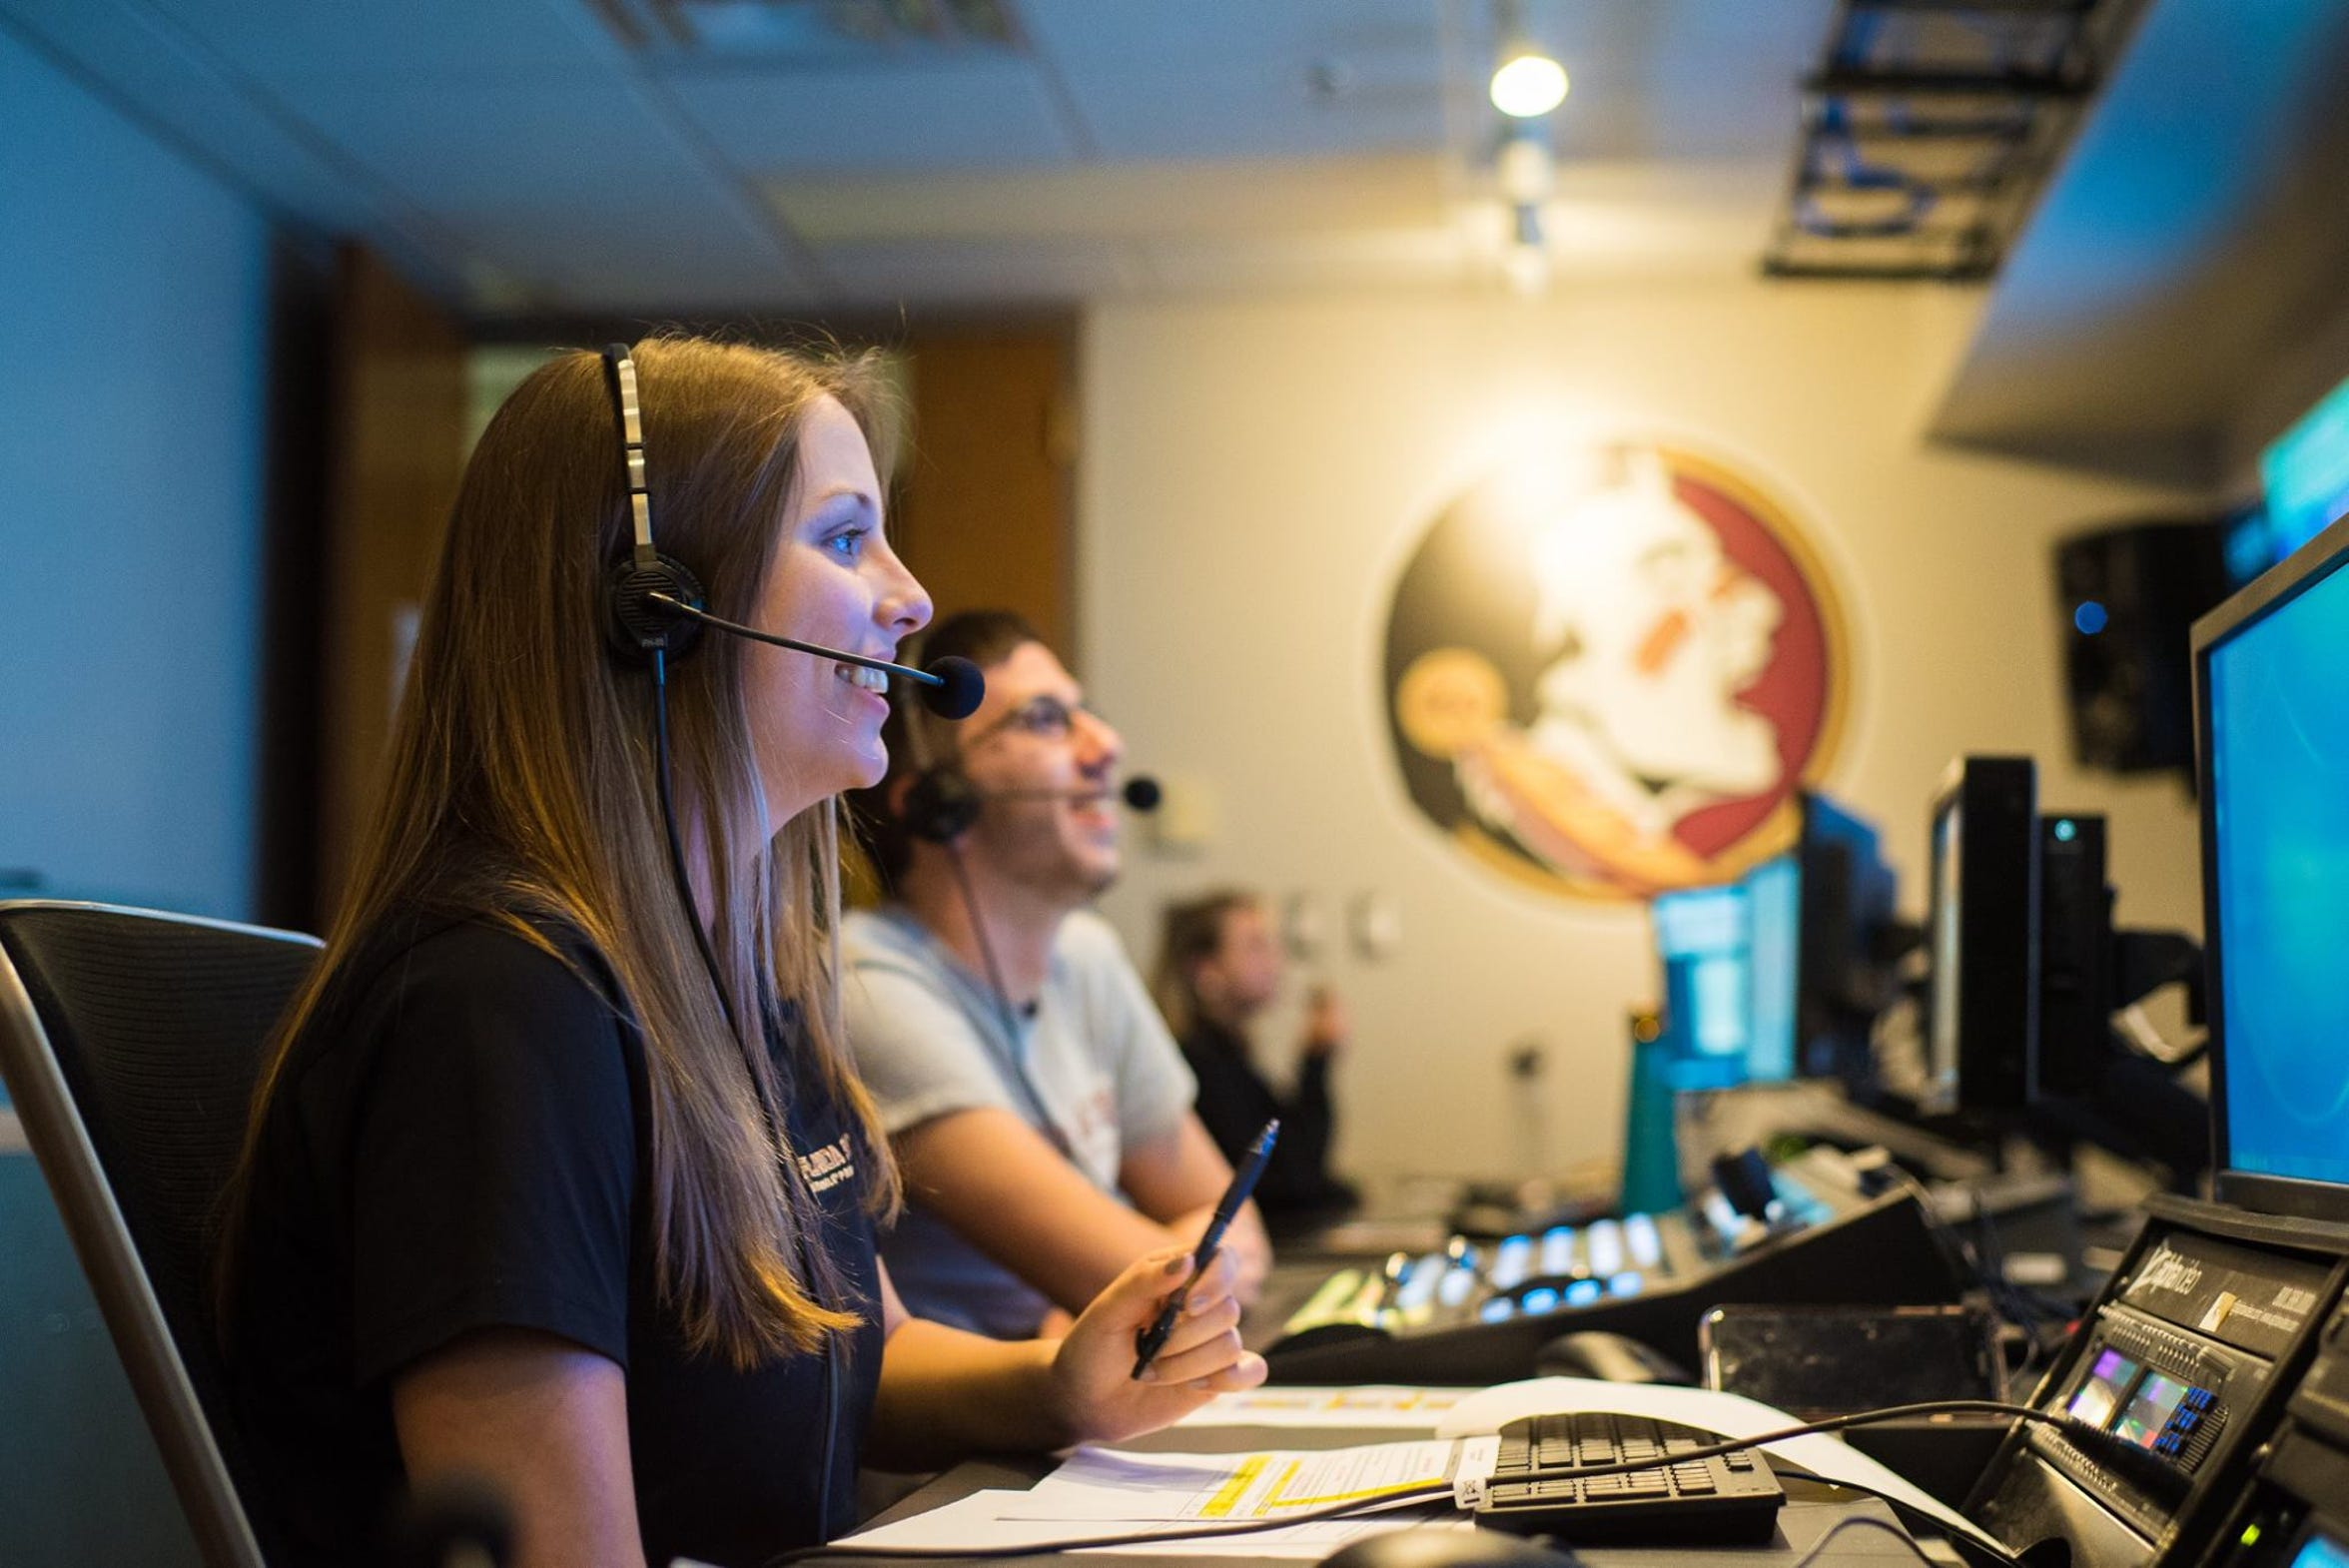 The crew of Seminole Productions, comprised of current and former students, conduct broadcasts out of the Moore Athletic Center at Doak Campbell Stadium.